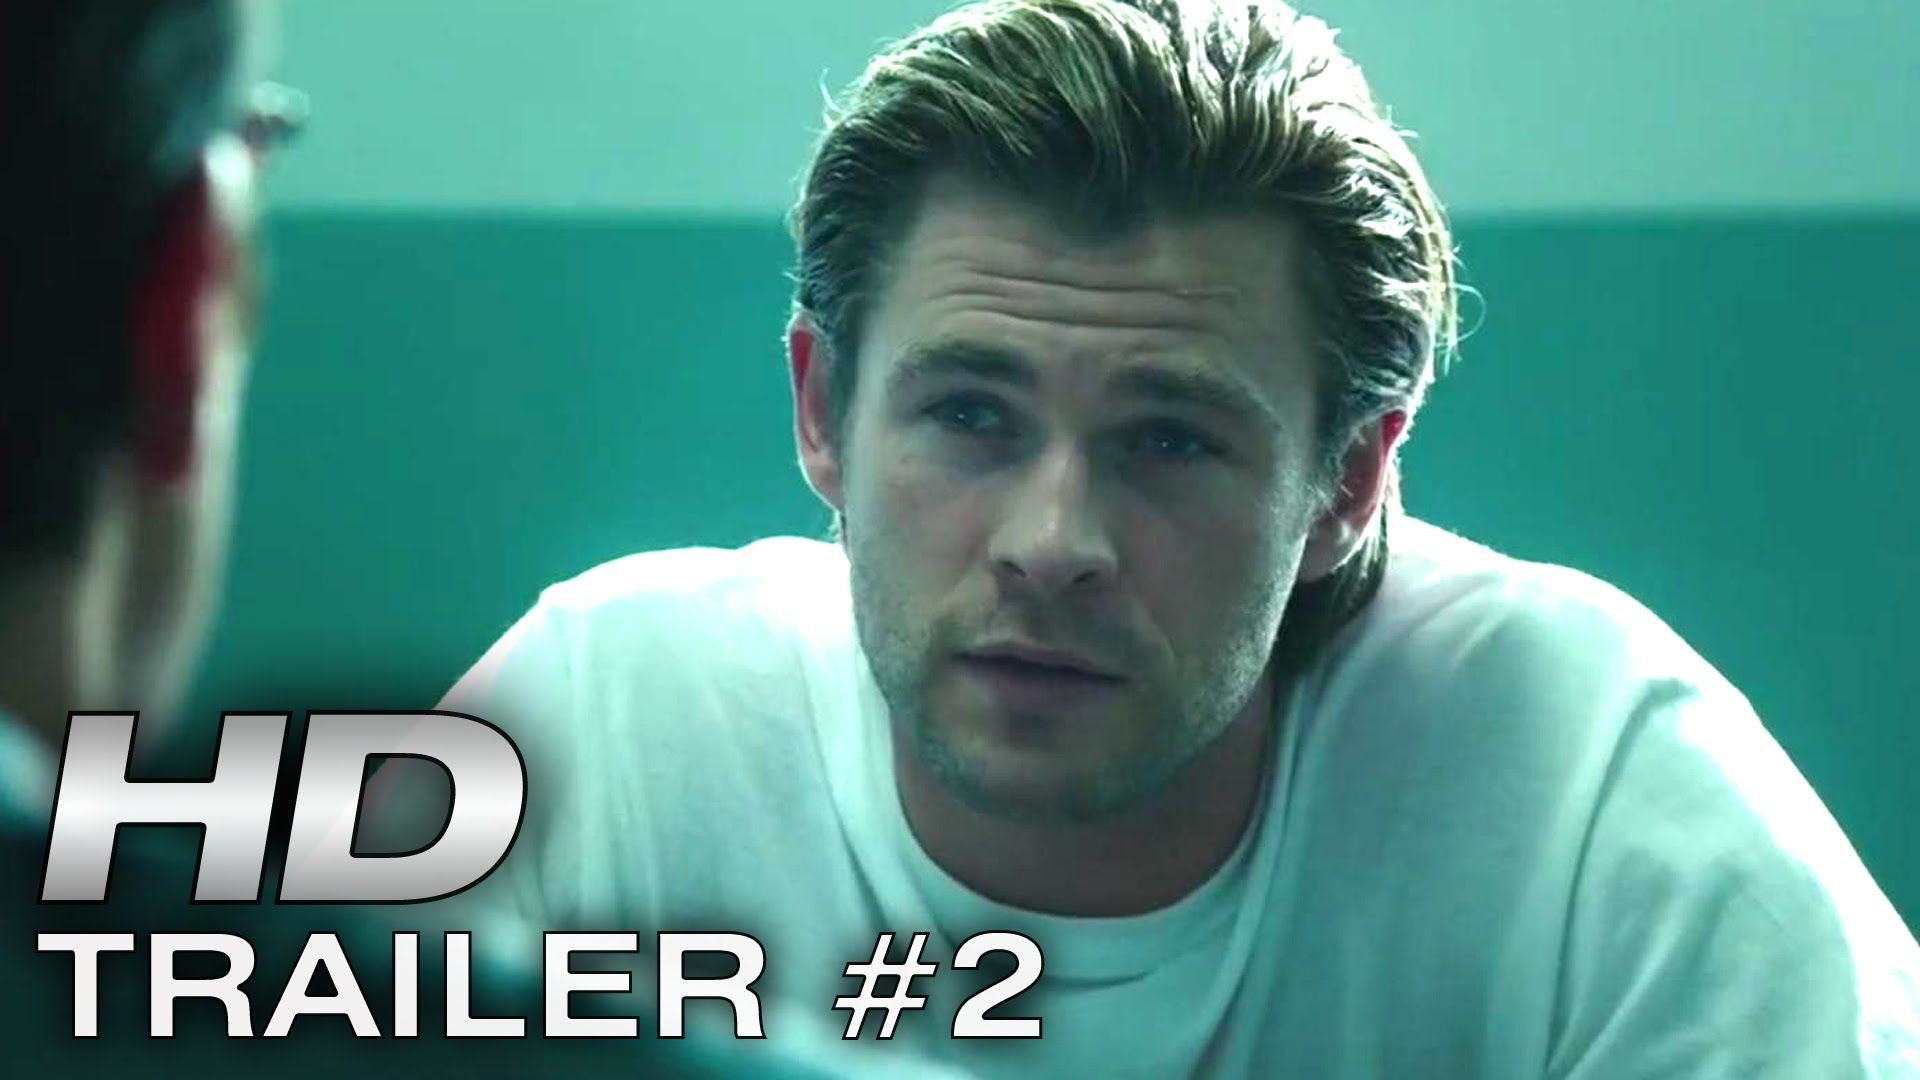 Blackhat Trailer #2 (2015) Chris Hemsworth Movie - Official